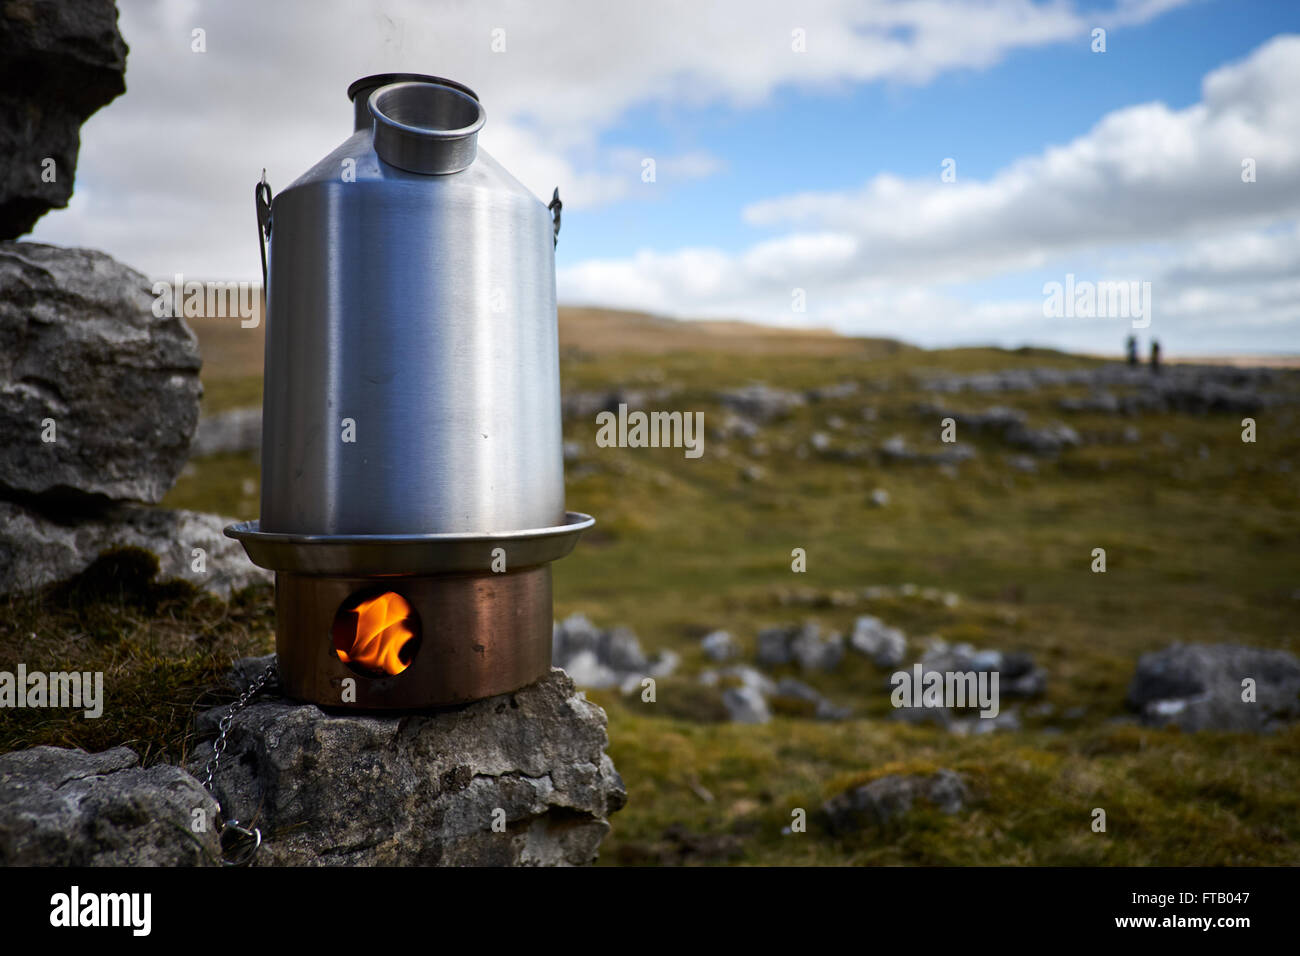 A kettle stove burning showing flames in the fire box sat on a rock with rock and grass in the background. - Stock Image